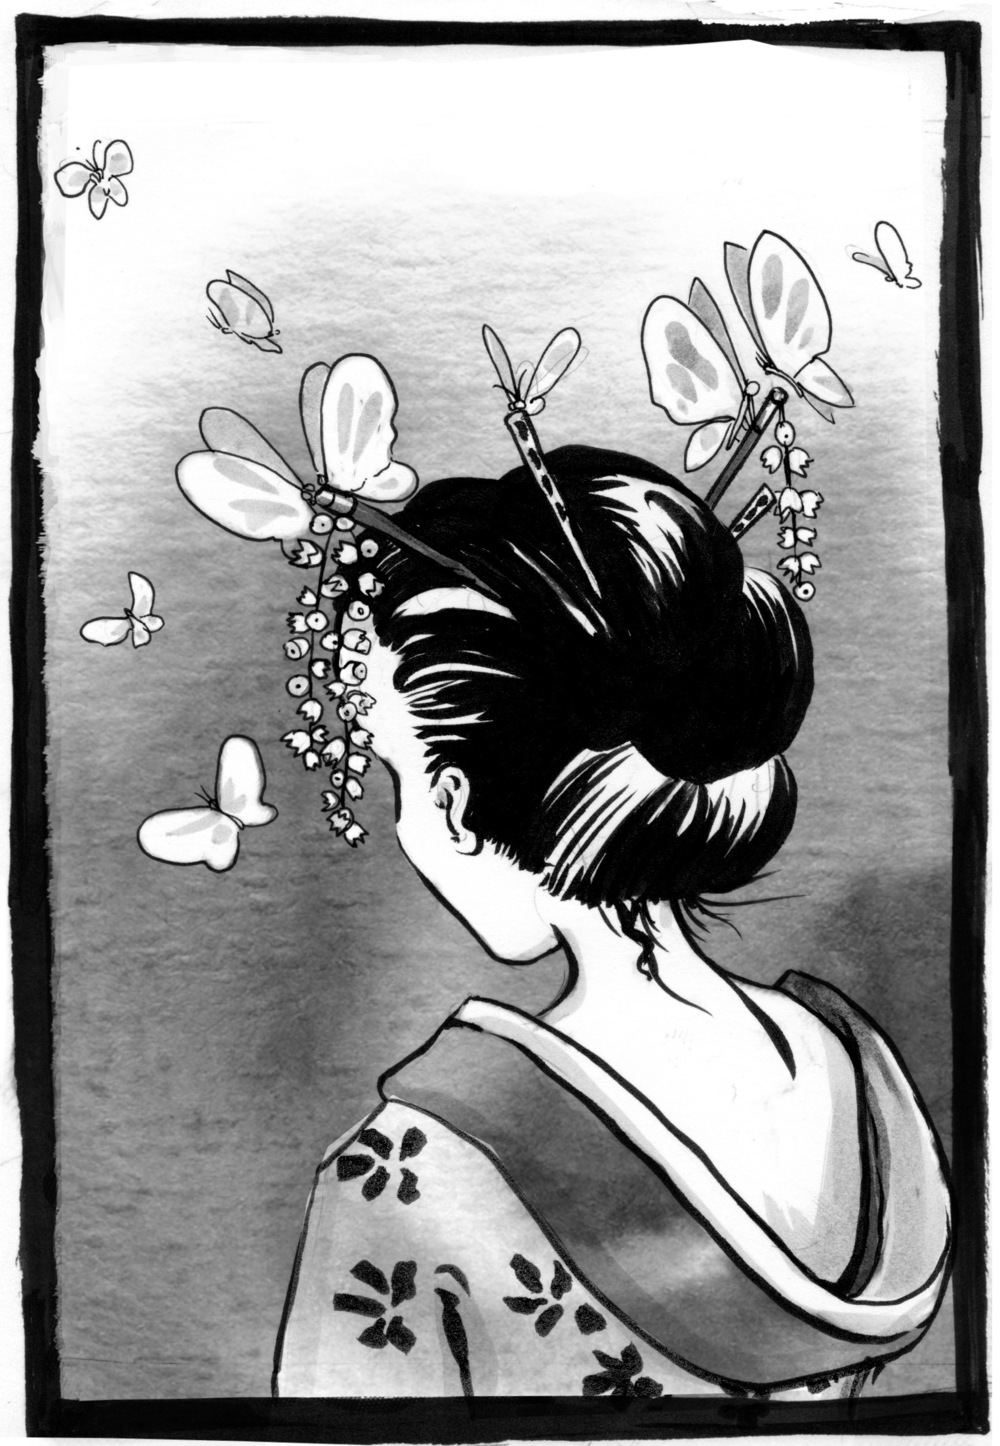 Pg 140 Madame Butterfly.jpg